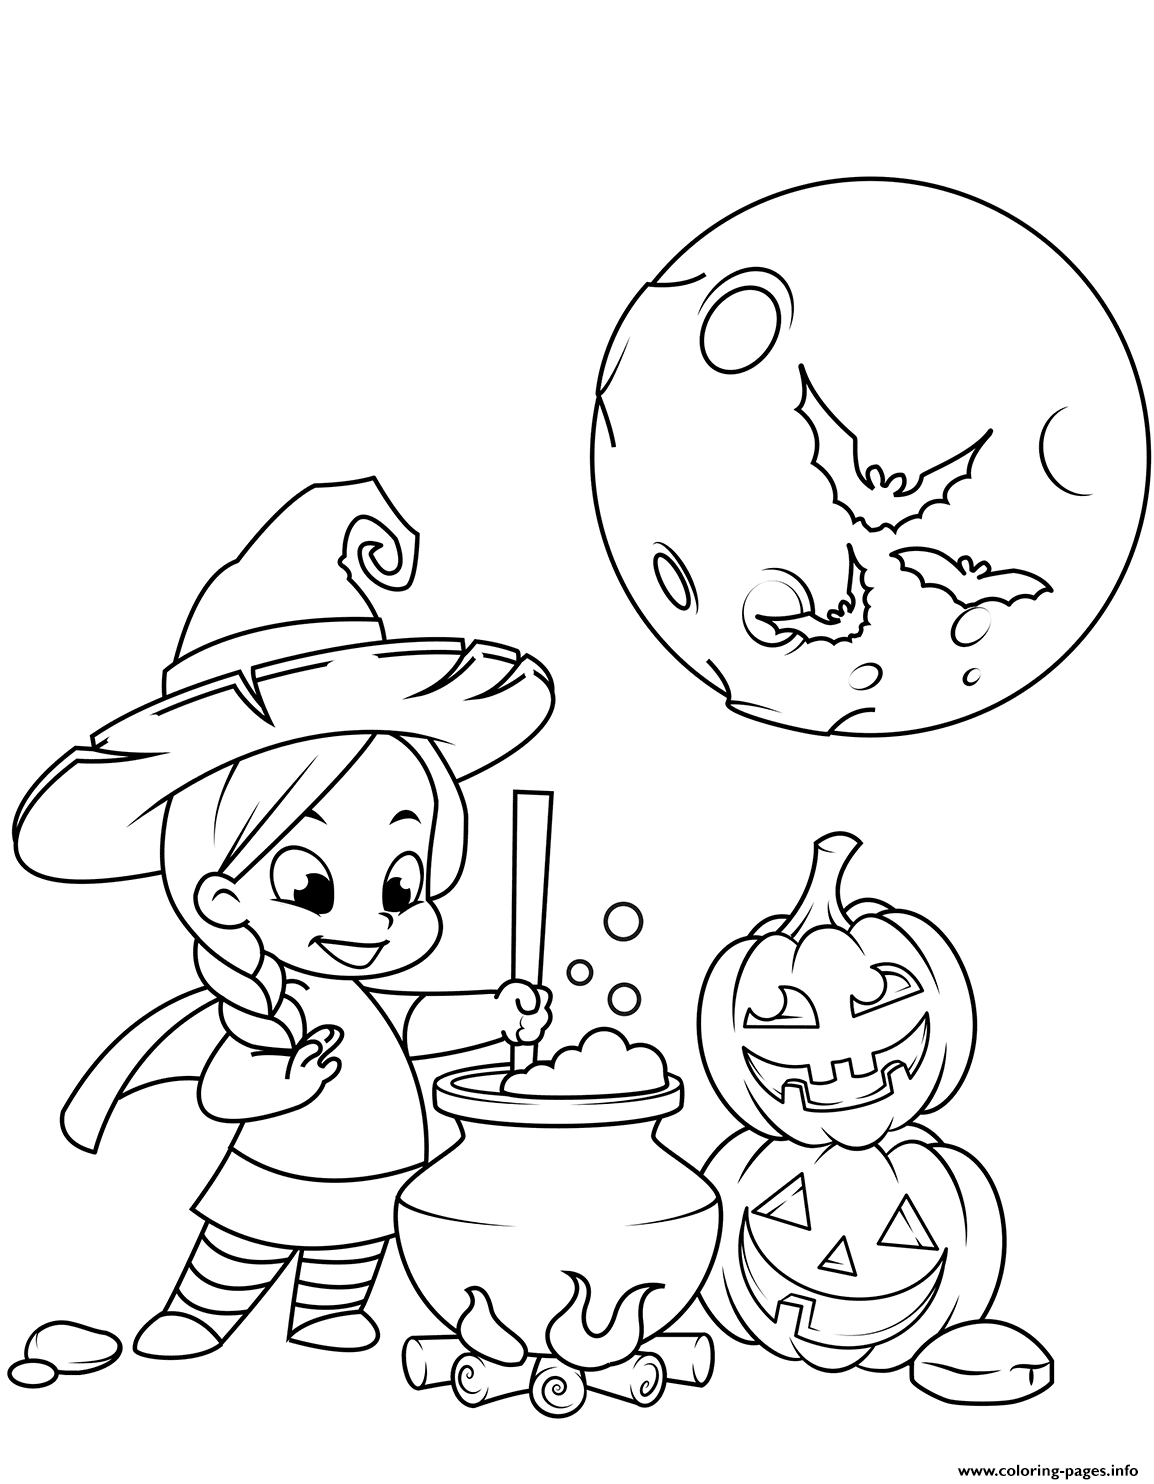 Cute Little Witch Cooking A Potion In A Cauldron Halloween